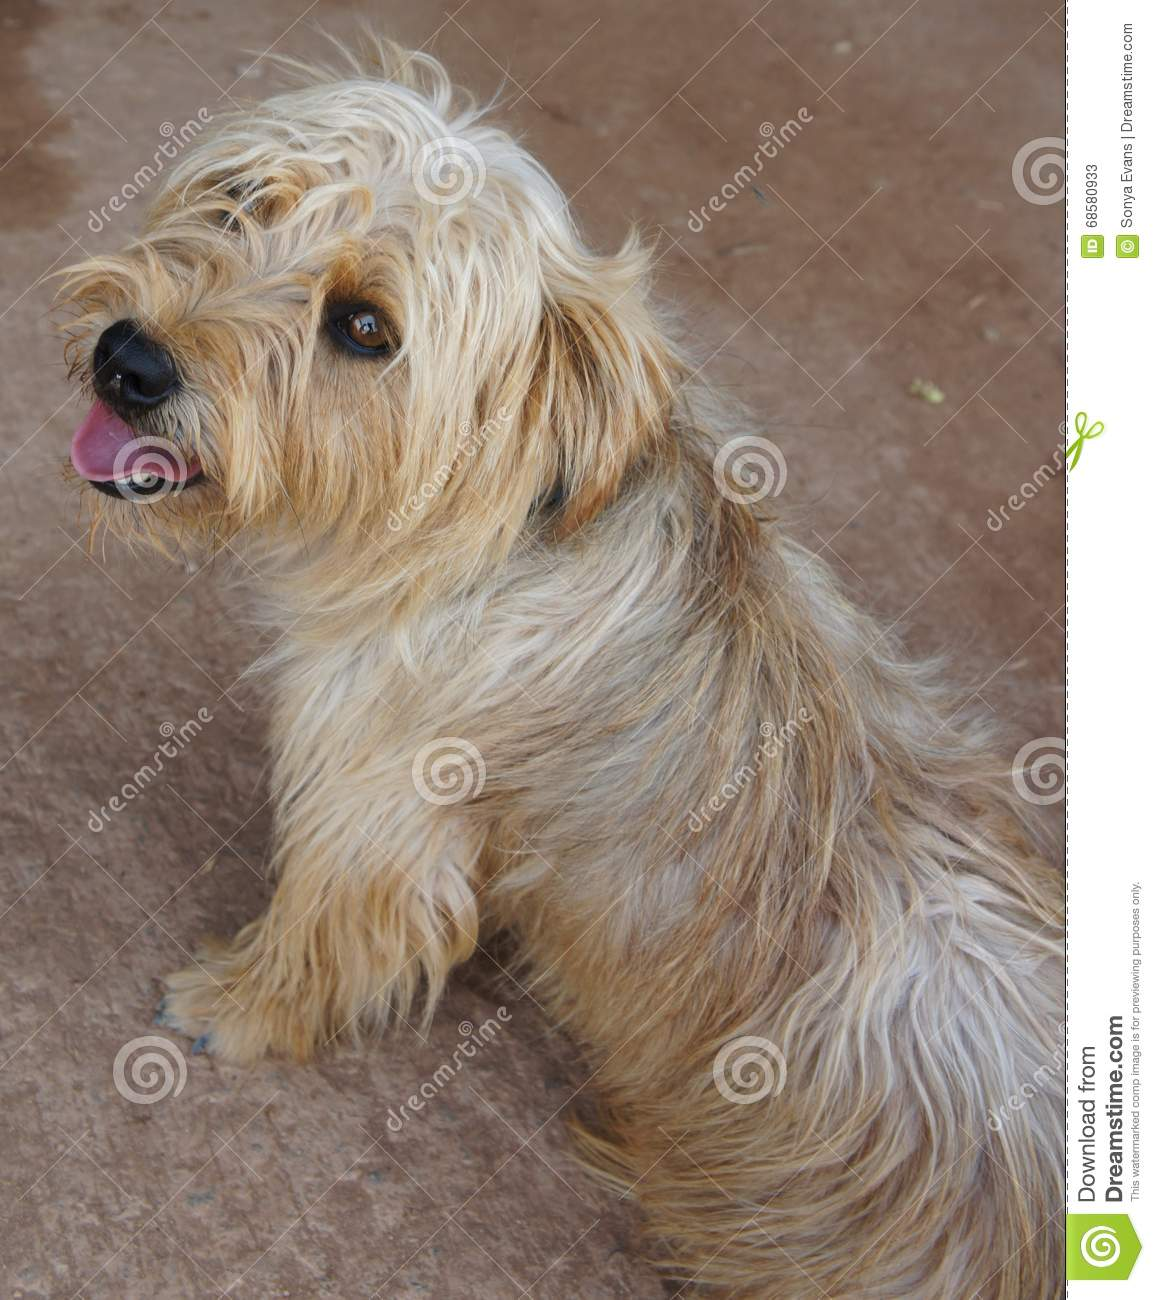 Glen of imaal terrier mixed breed dog stock image image of glen of imaal terrier mixed breed dog thecheapjerseys Image collections